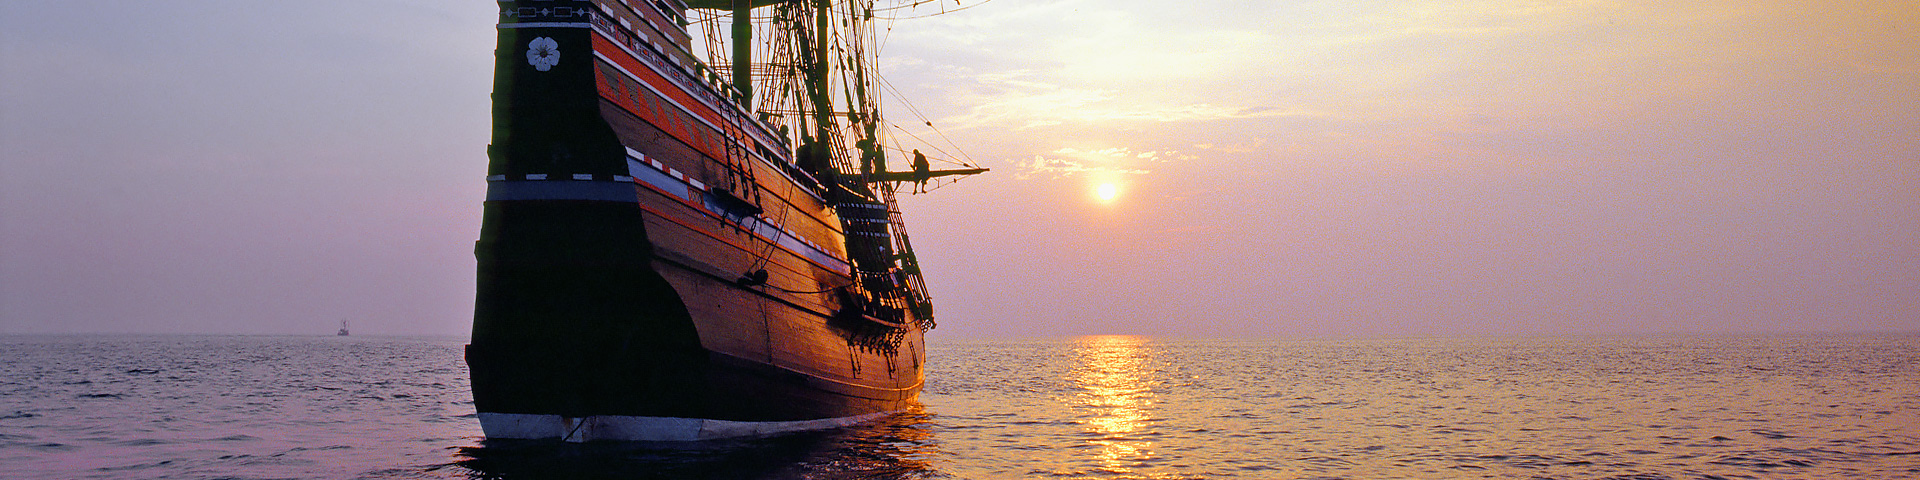 Mayflower Ship, Sunset